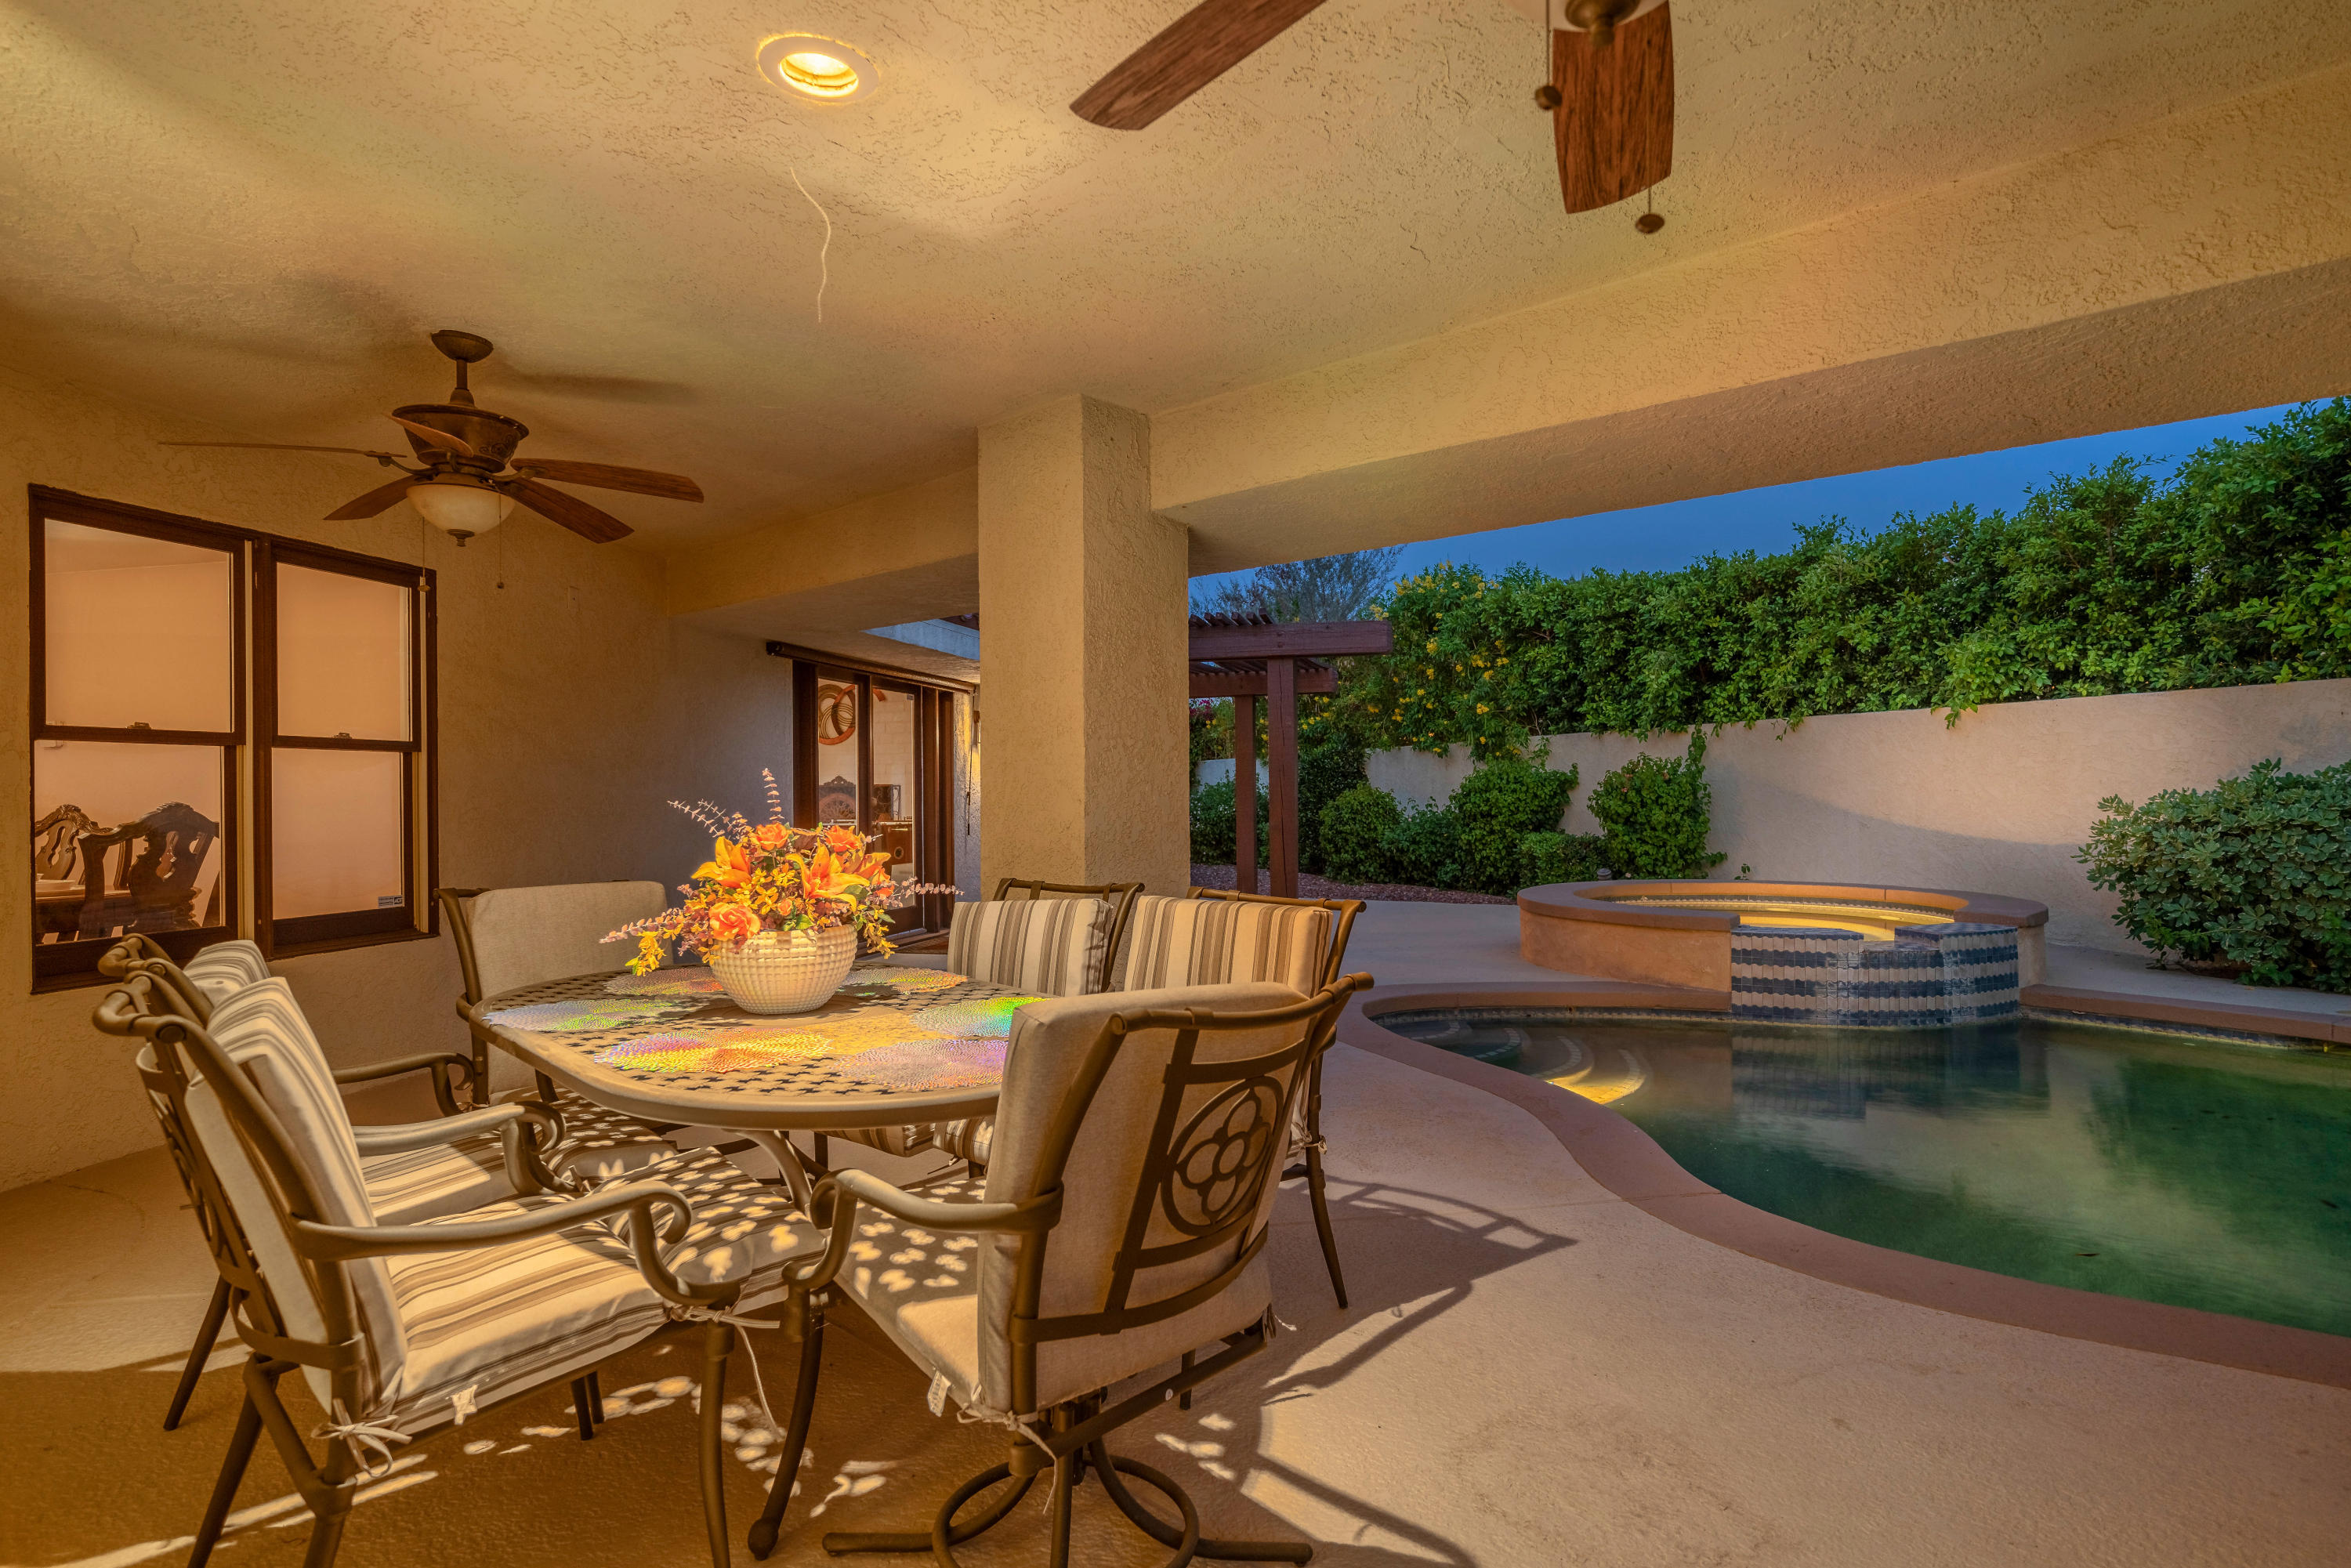 45385 Taos Cove, Indian Wells, California 92210, 3 Bedrooms Bedrooms, ,3 BathroomsBathrooms,Residential,For Sale,45385 Taos Cove,219042542